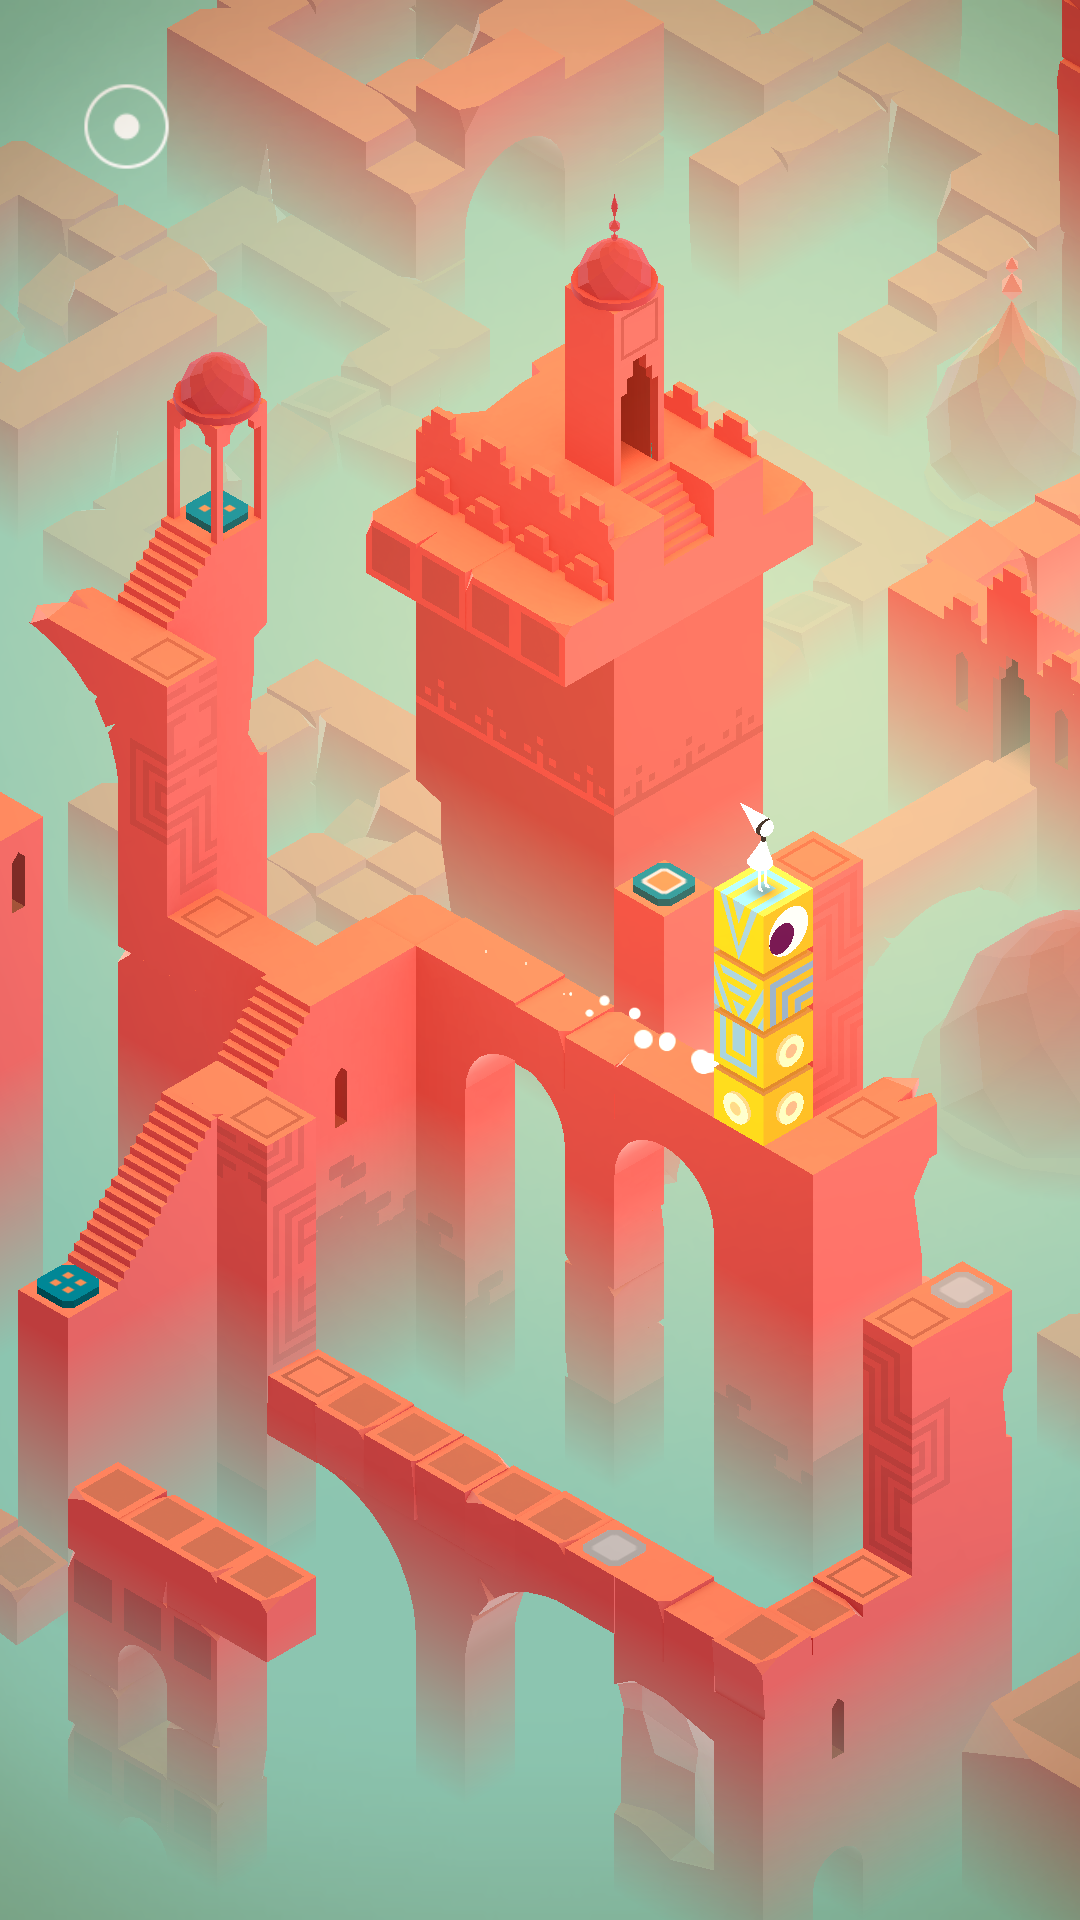 monument valley game - Google Search